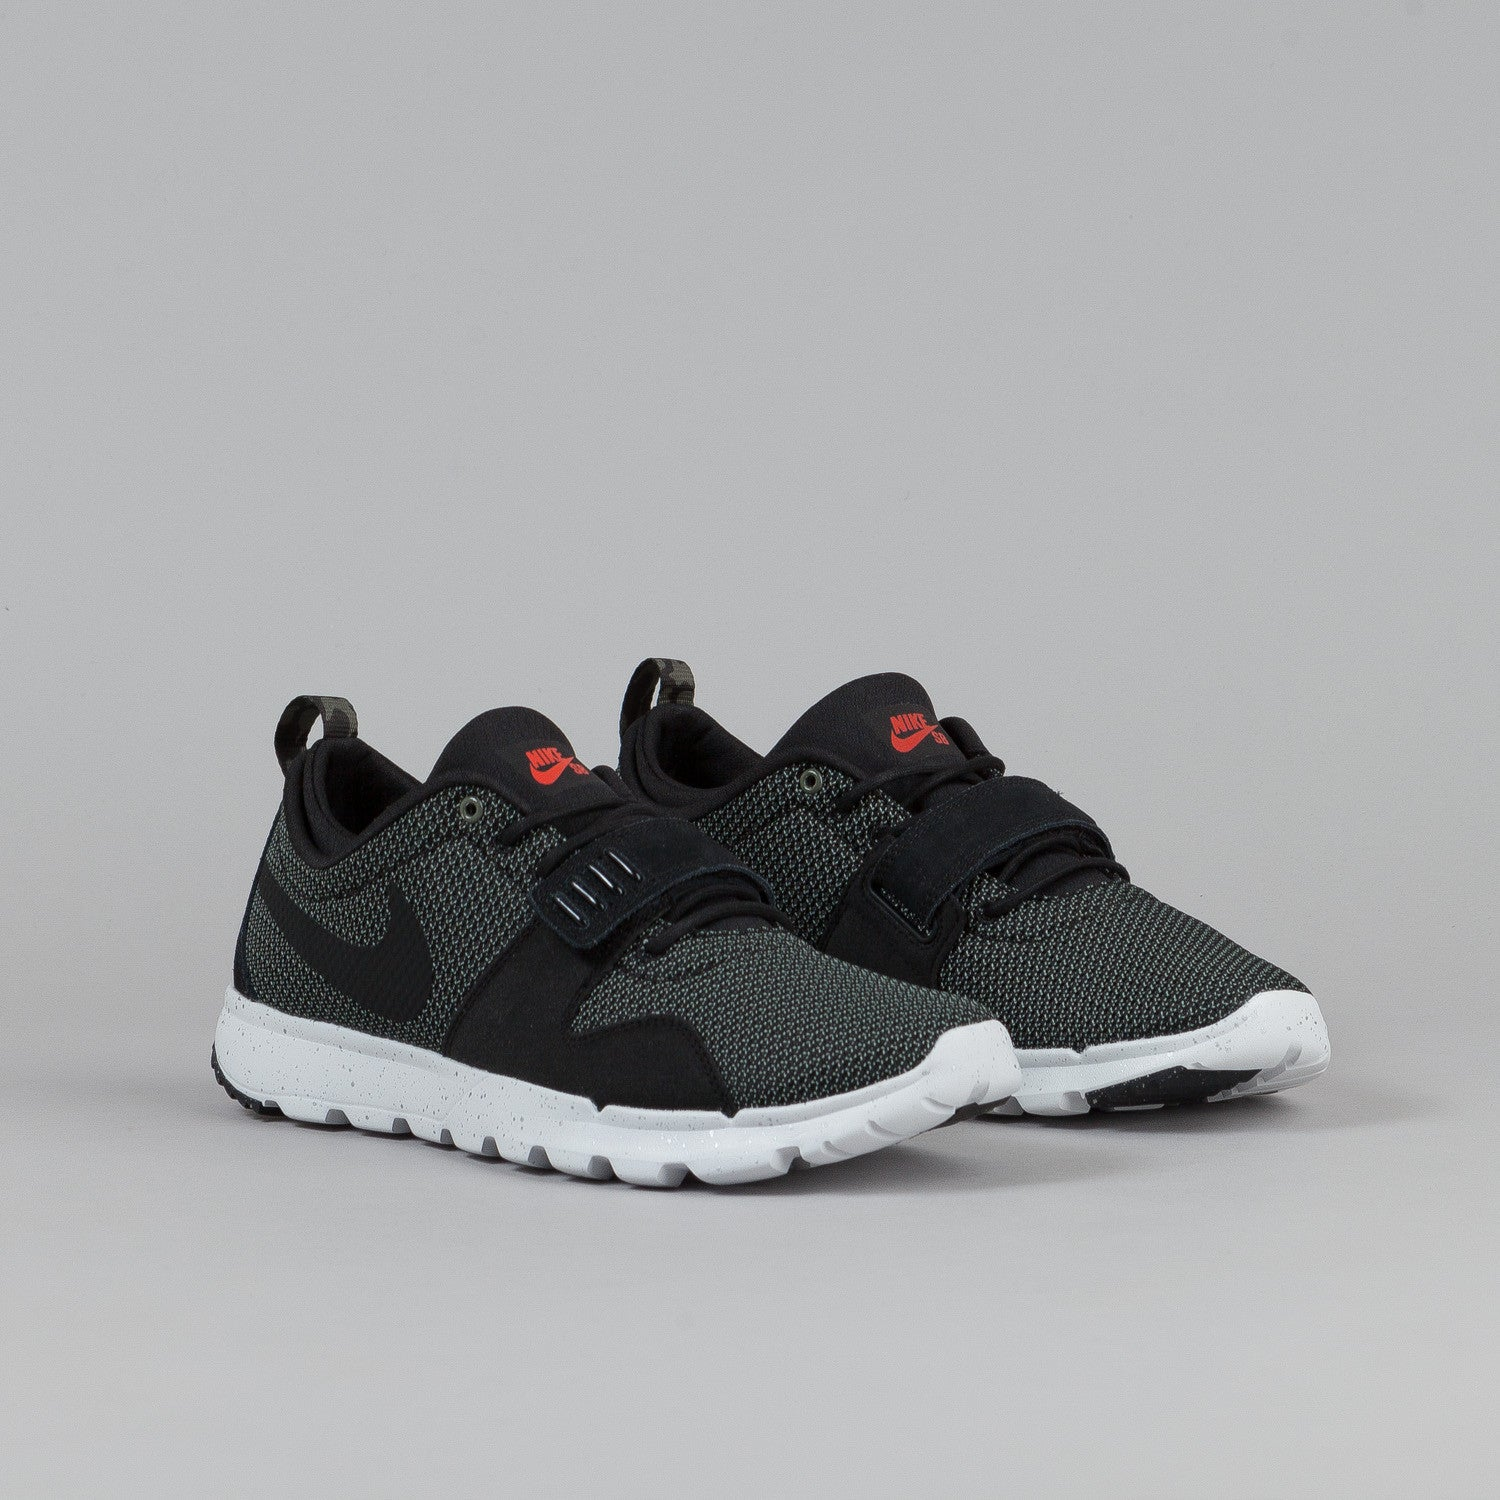 Nike SB Trainerendor Iron Green / Black - Metallic Silver